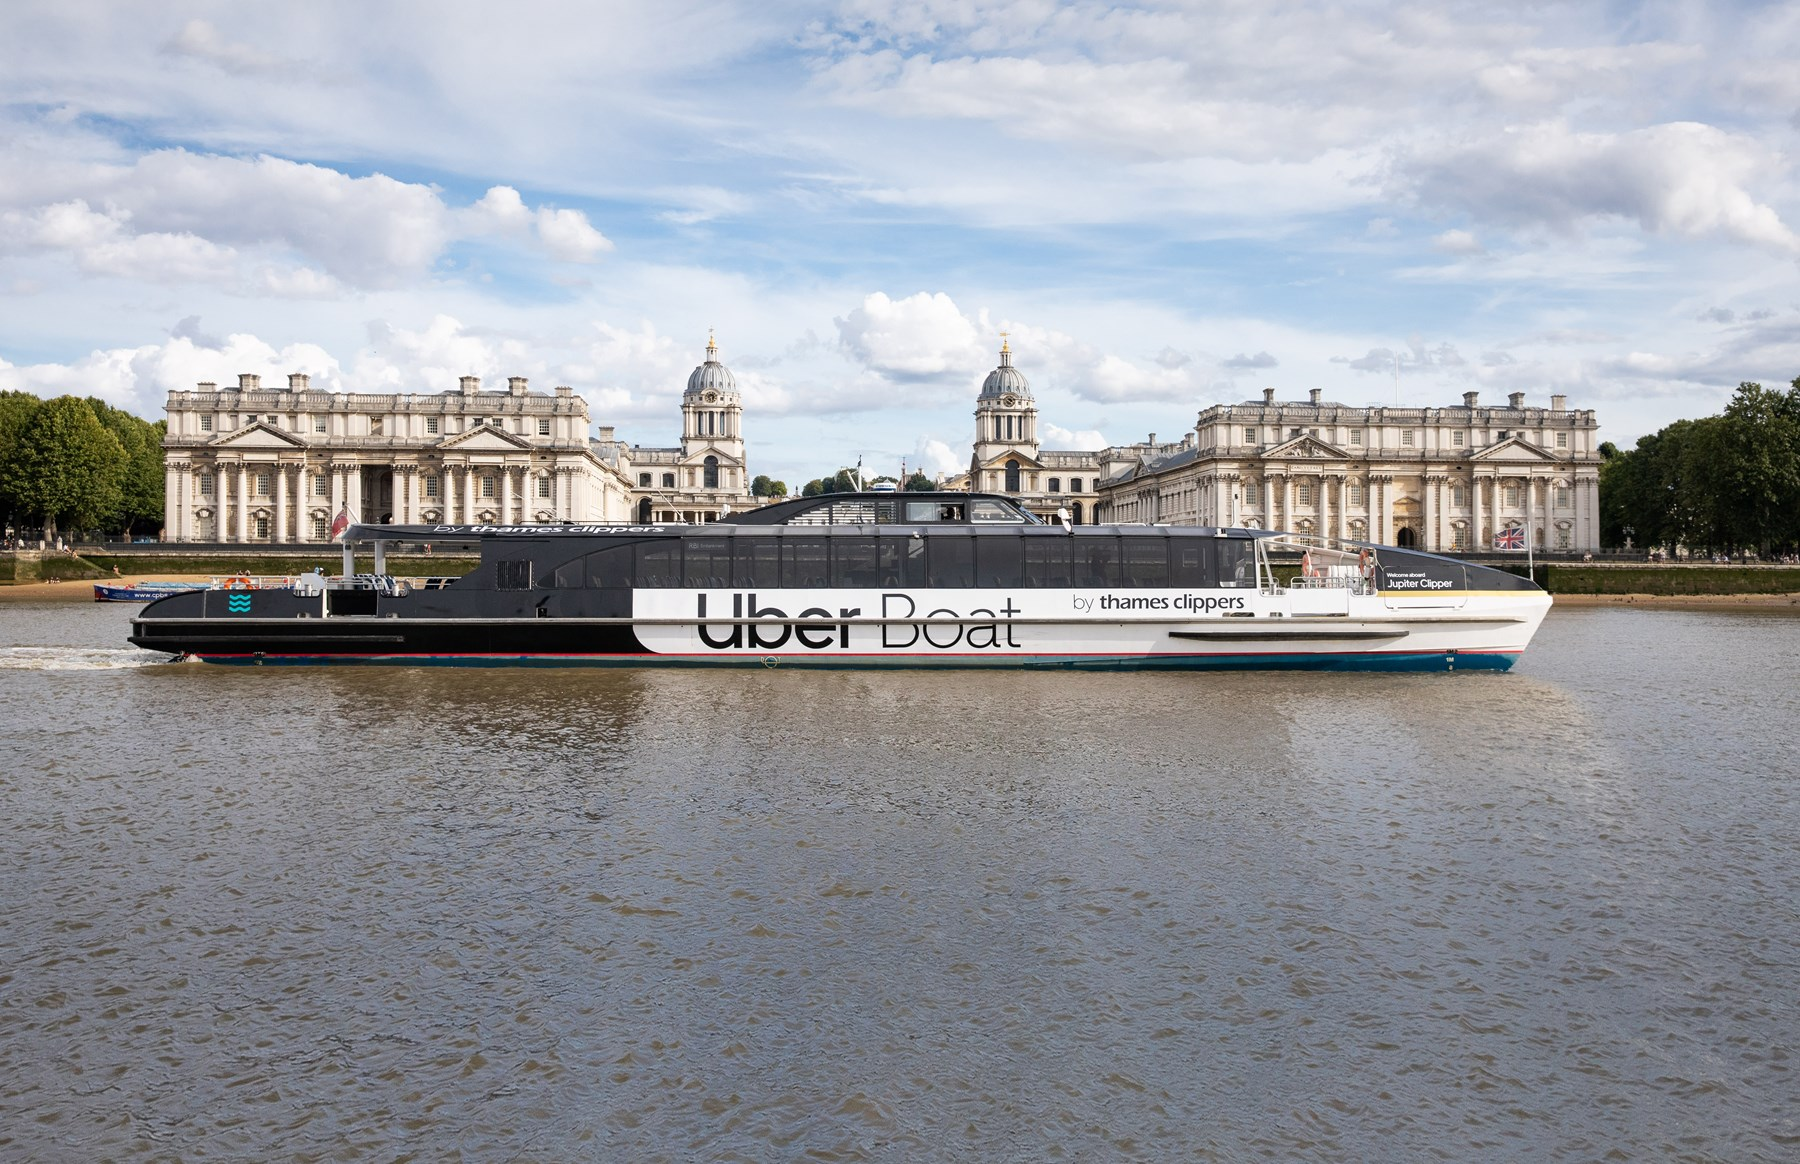 Uber Boat By Thames Clippers ORNC HERO ONLY